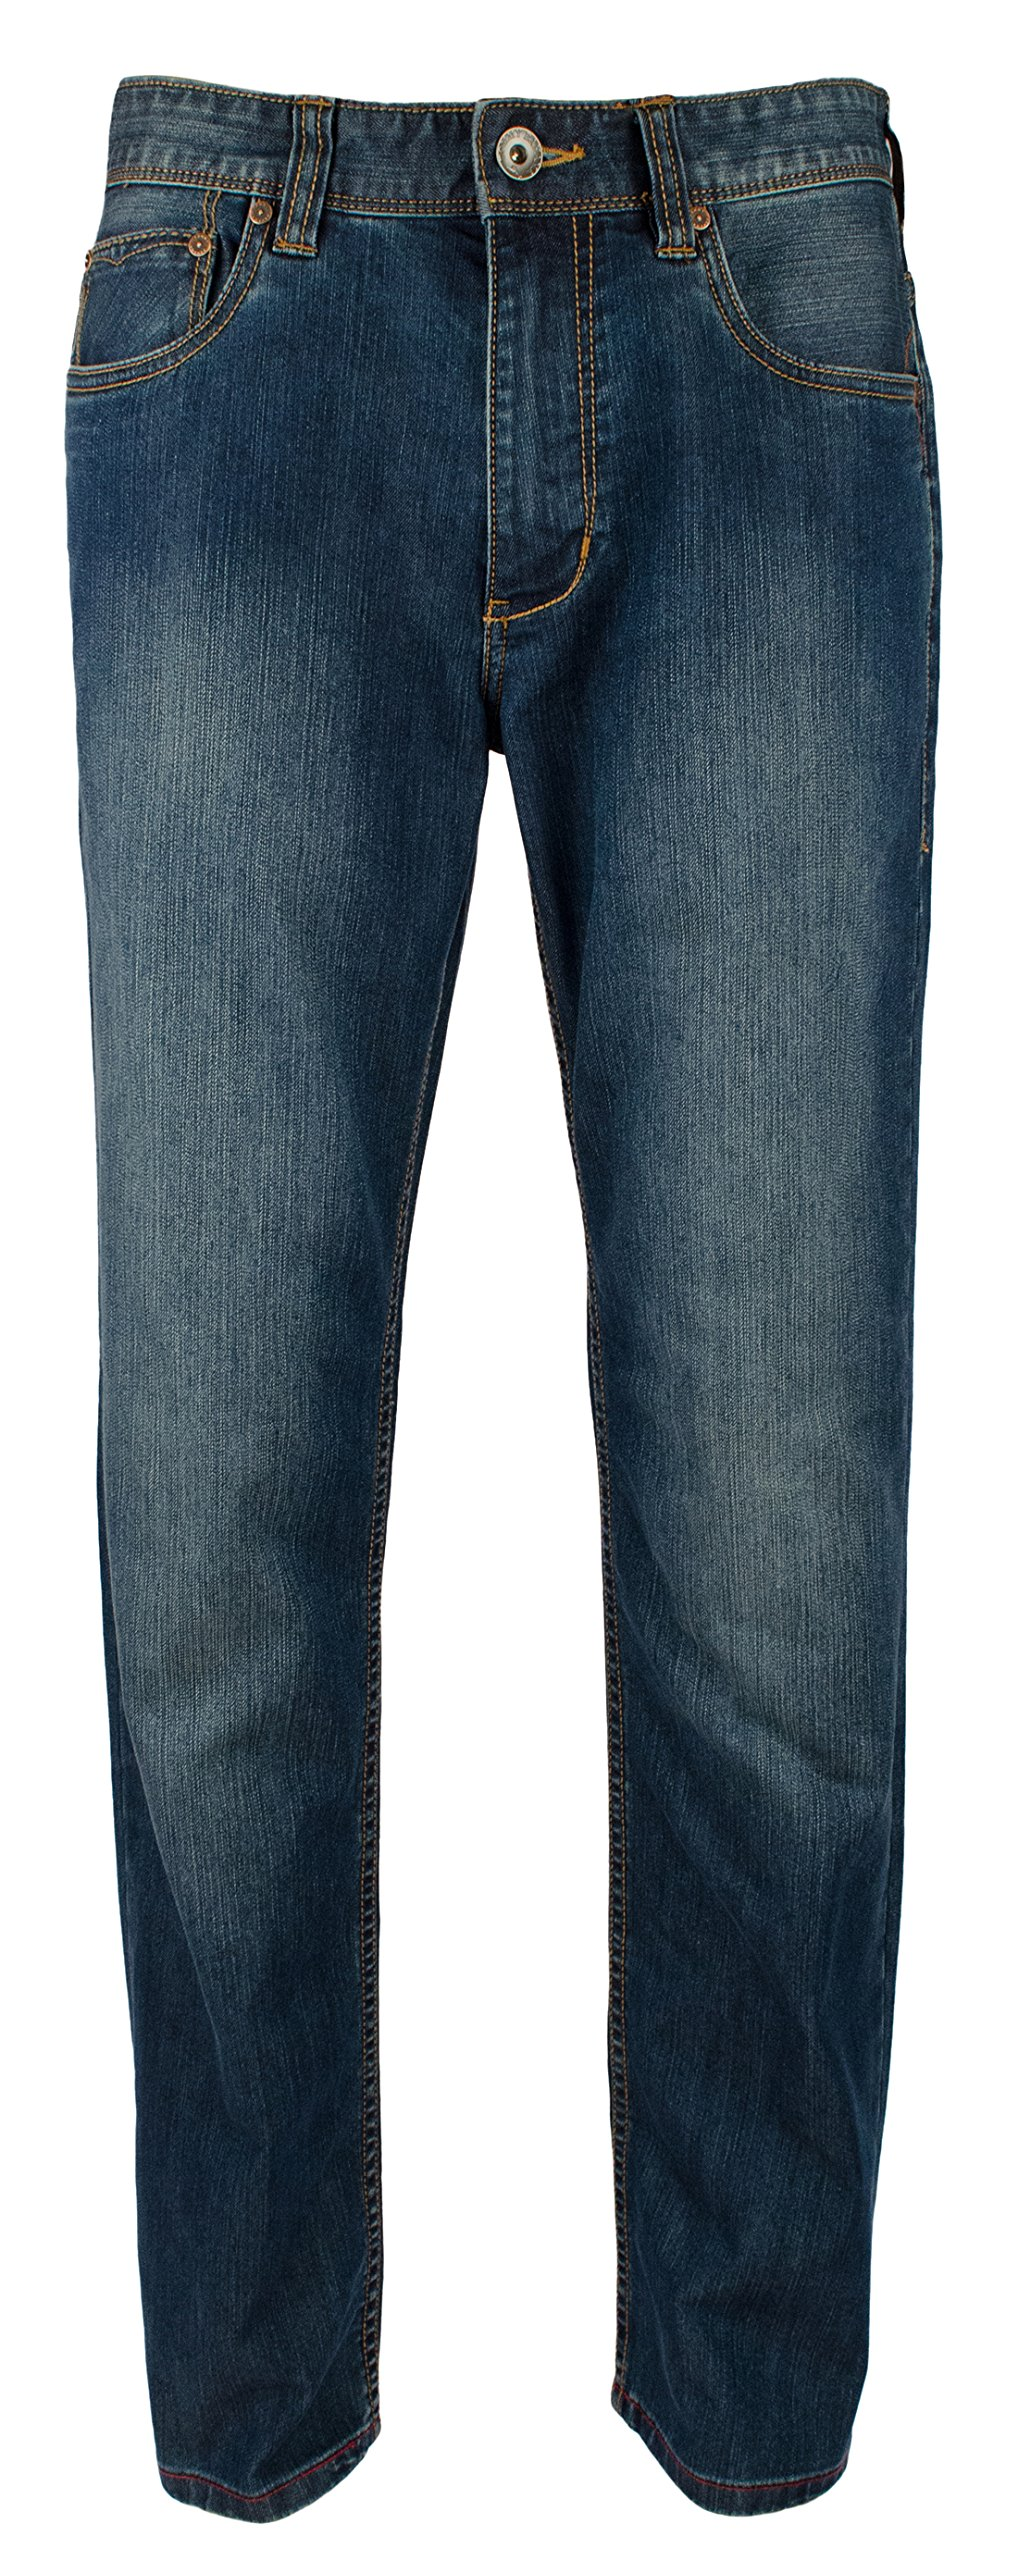 Tommy Bahama Men's Sorrento Authentic Straight Fit Jeans-MW-32Wx32L by Tommy Bahama